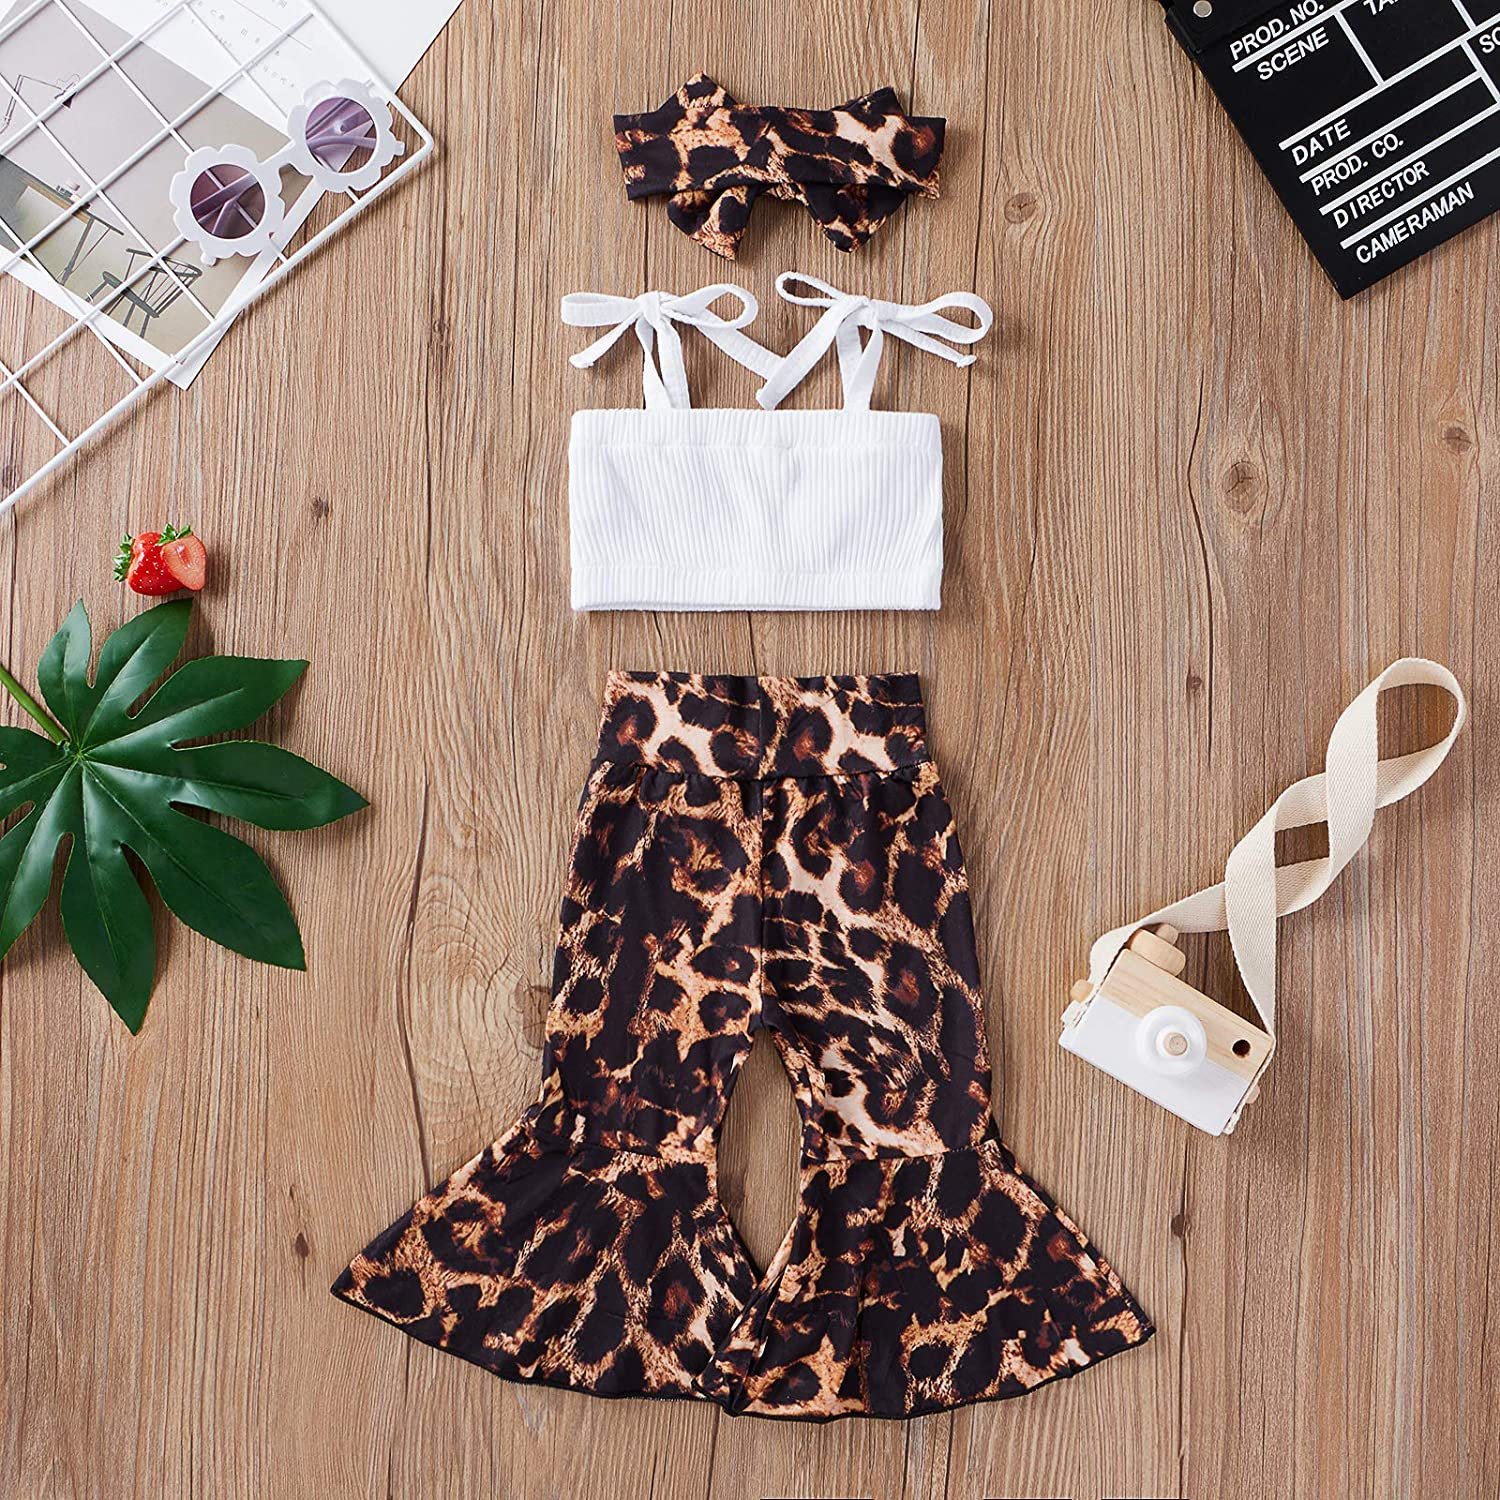 Toddler Baby Girls Summer Outfits Ruffle Crop Tops Halter Sunflower Floral Bowknot Pants Kids Clothes Sets